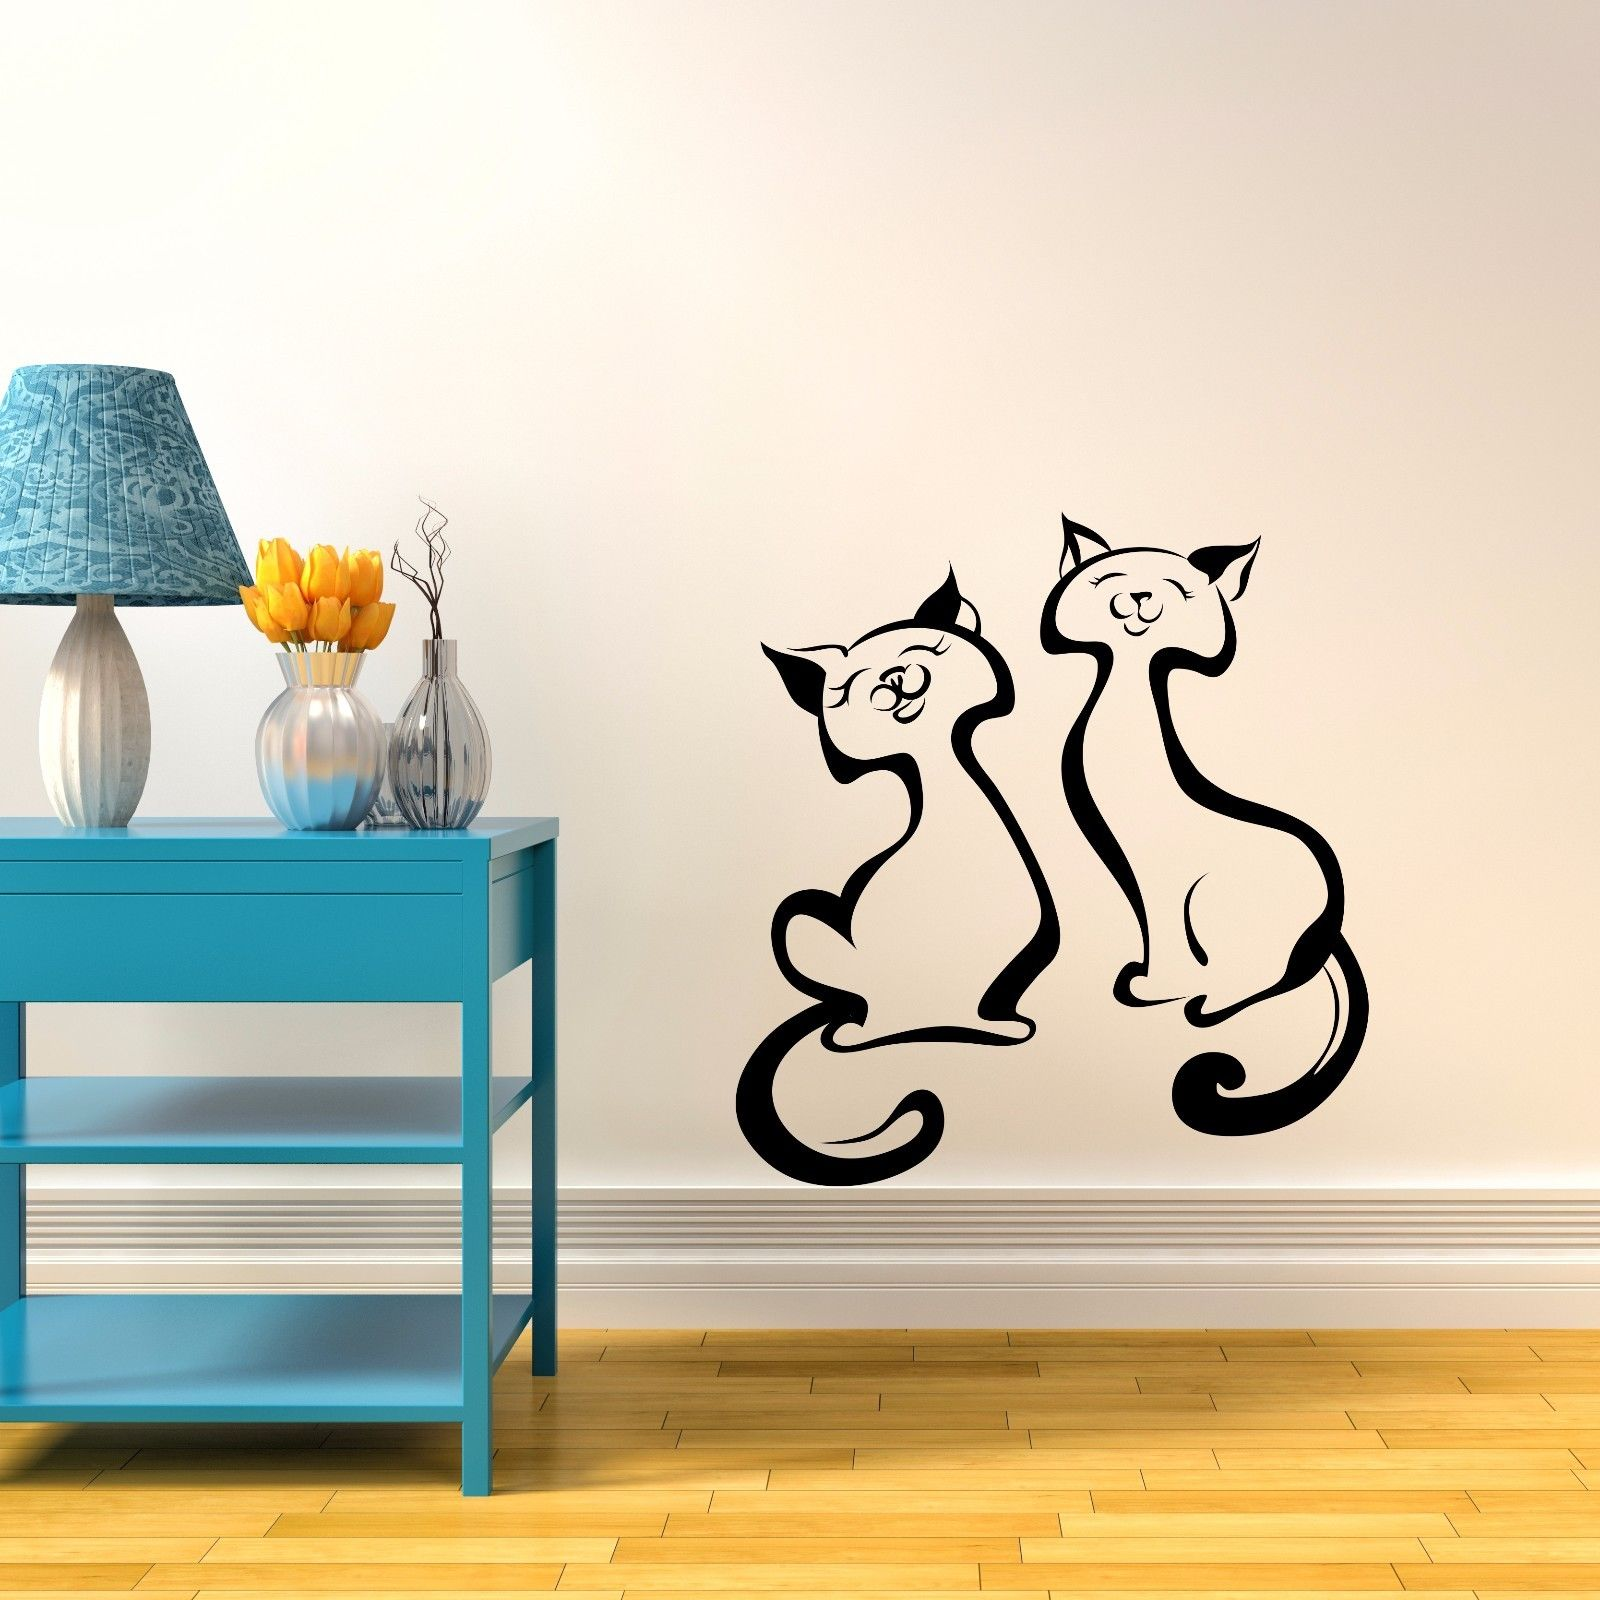 Vinyl Wall Decal 2 Cats Vinyl Wall Sticker Decor Decal Livingroom Nursery